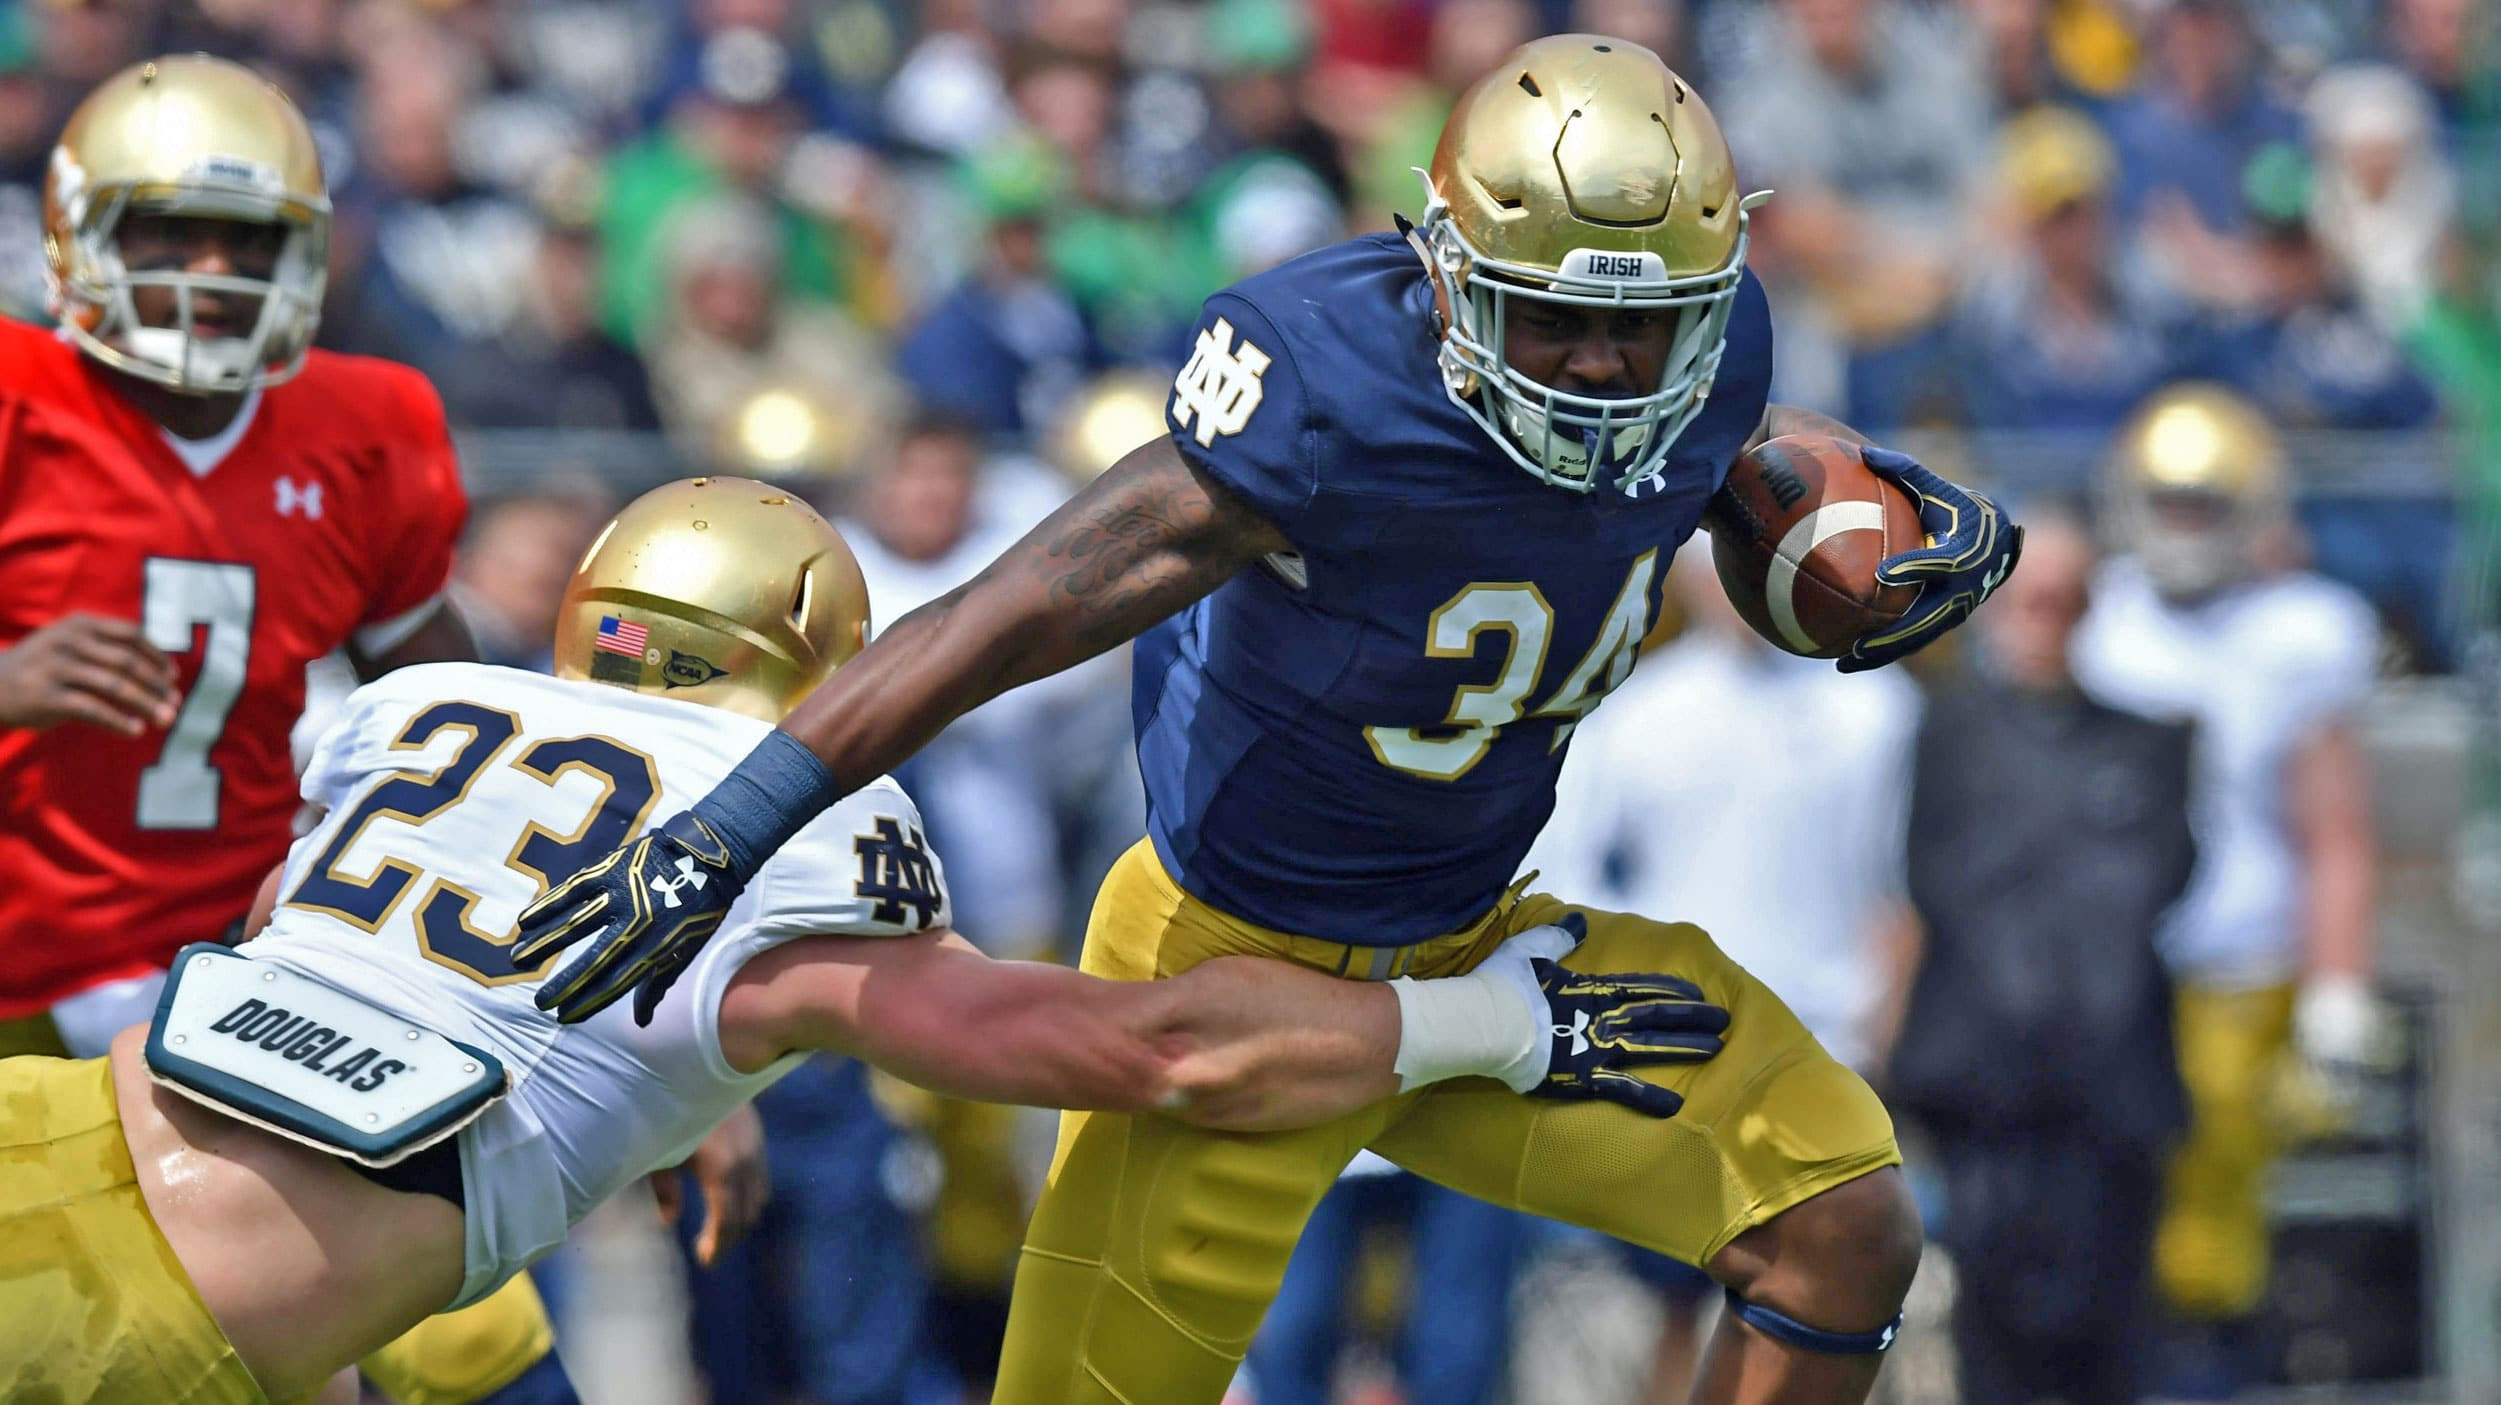 Notre Dame football — Latest News and s — Cryptic